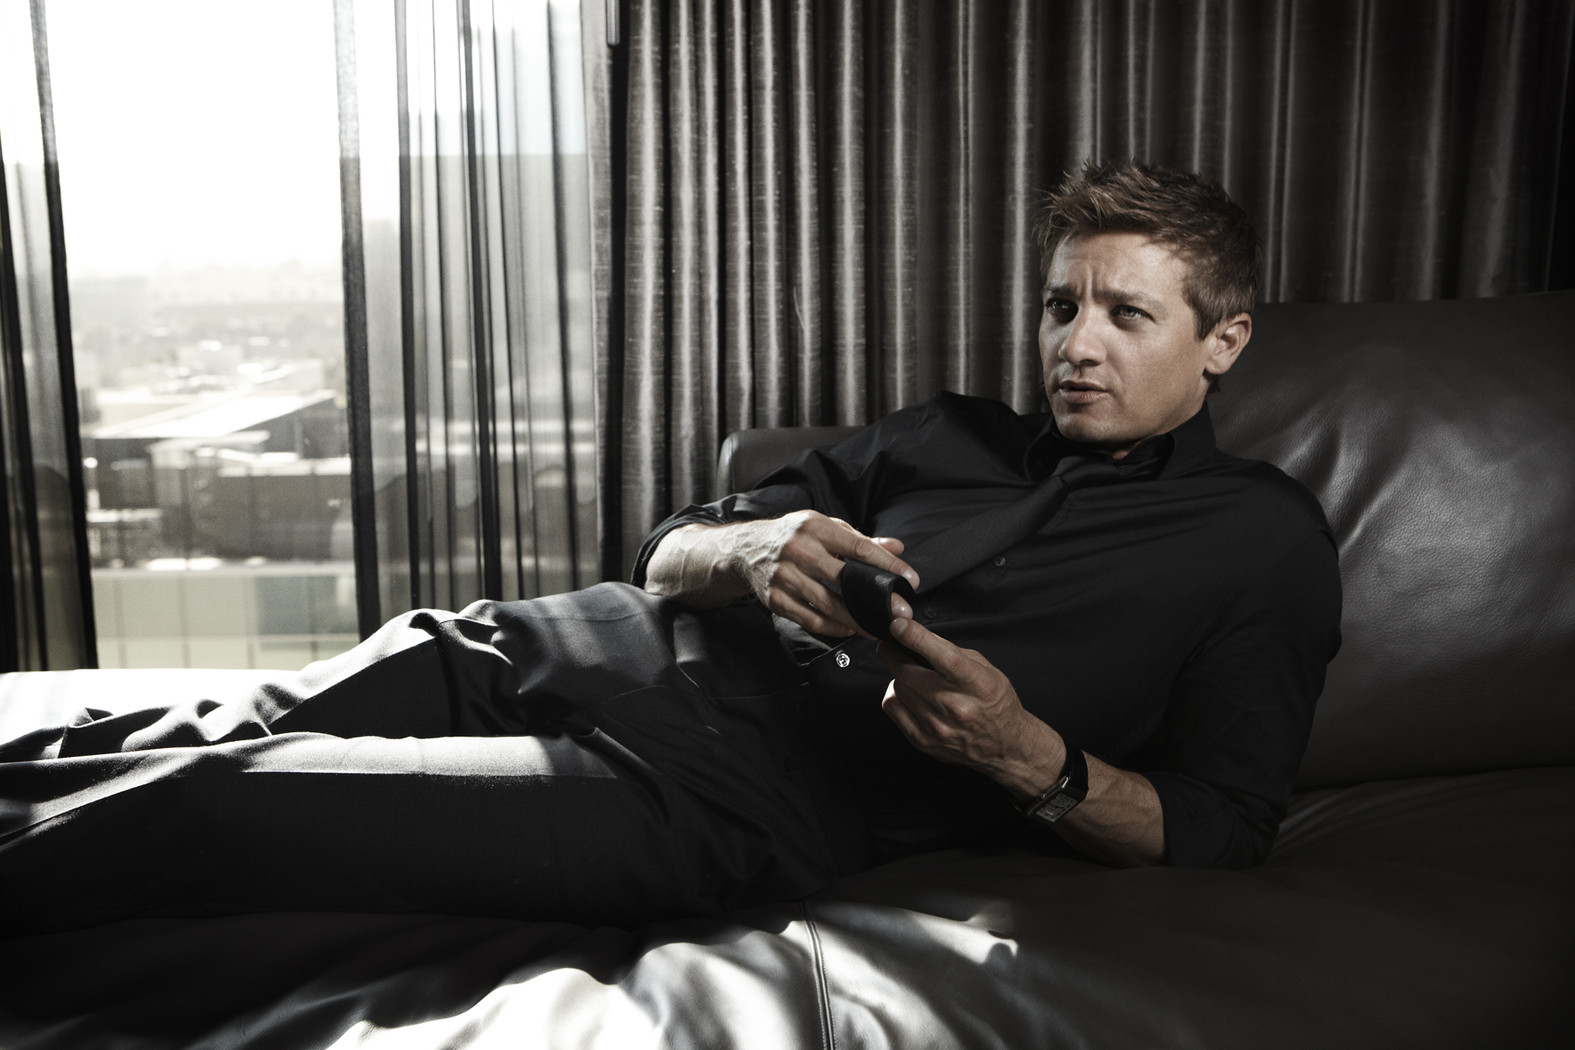 Jeremy Renner Wallpapers and Background Images   stmednet 1575x1050